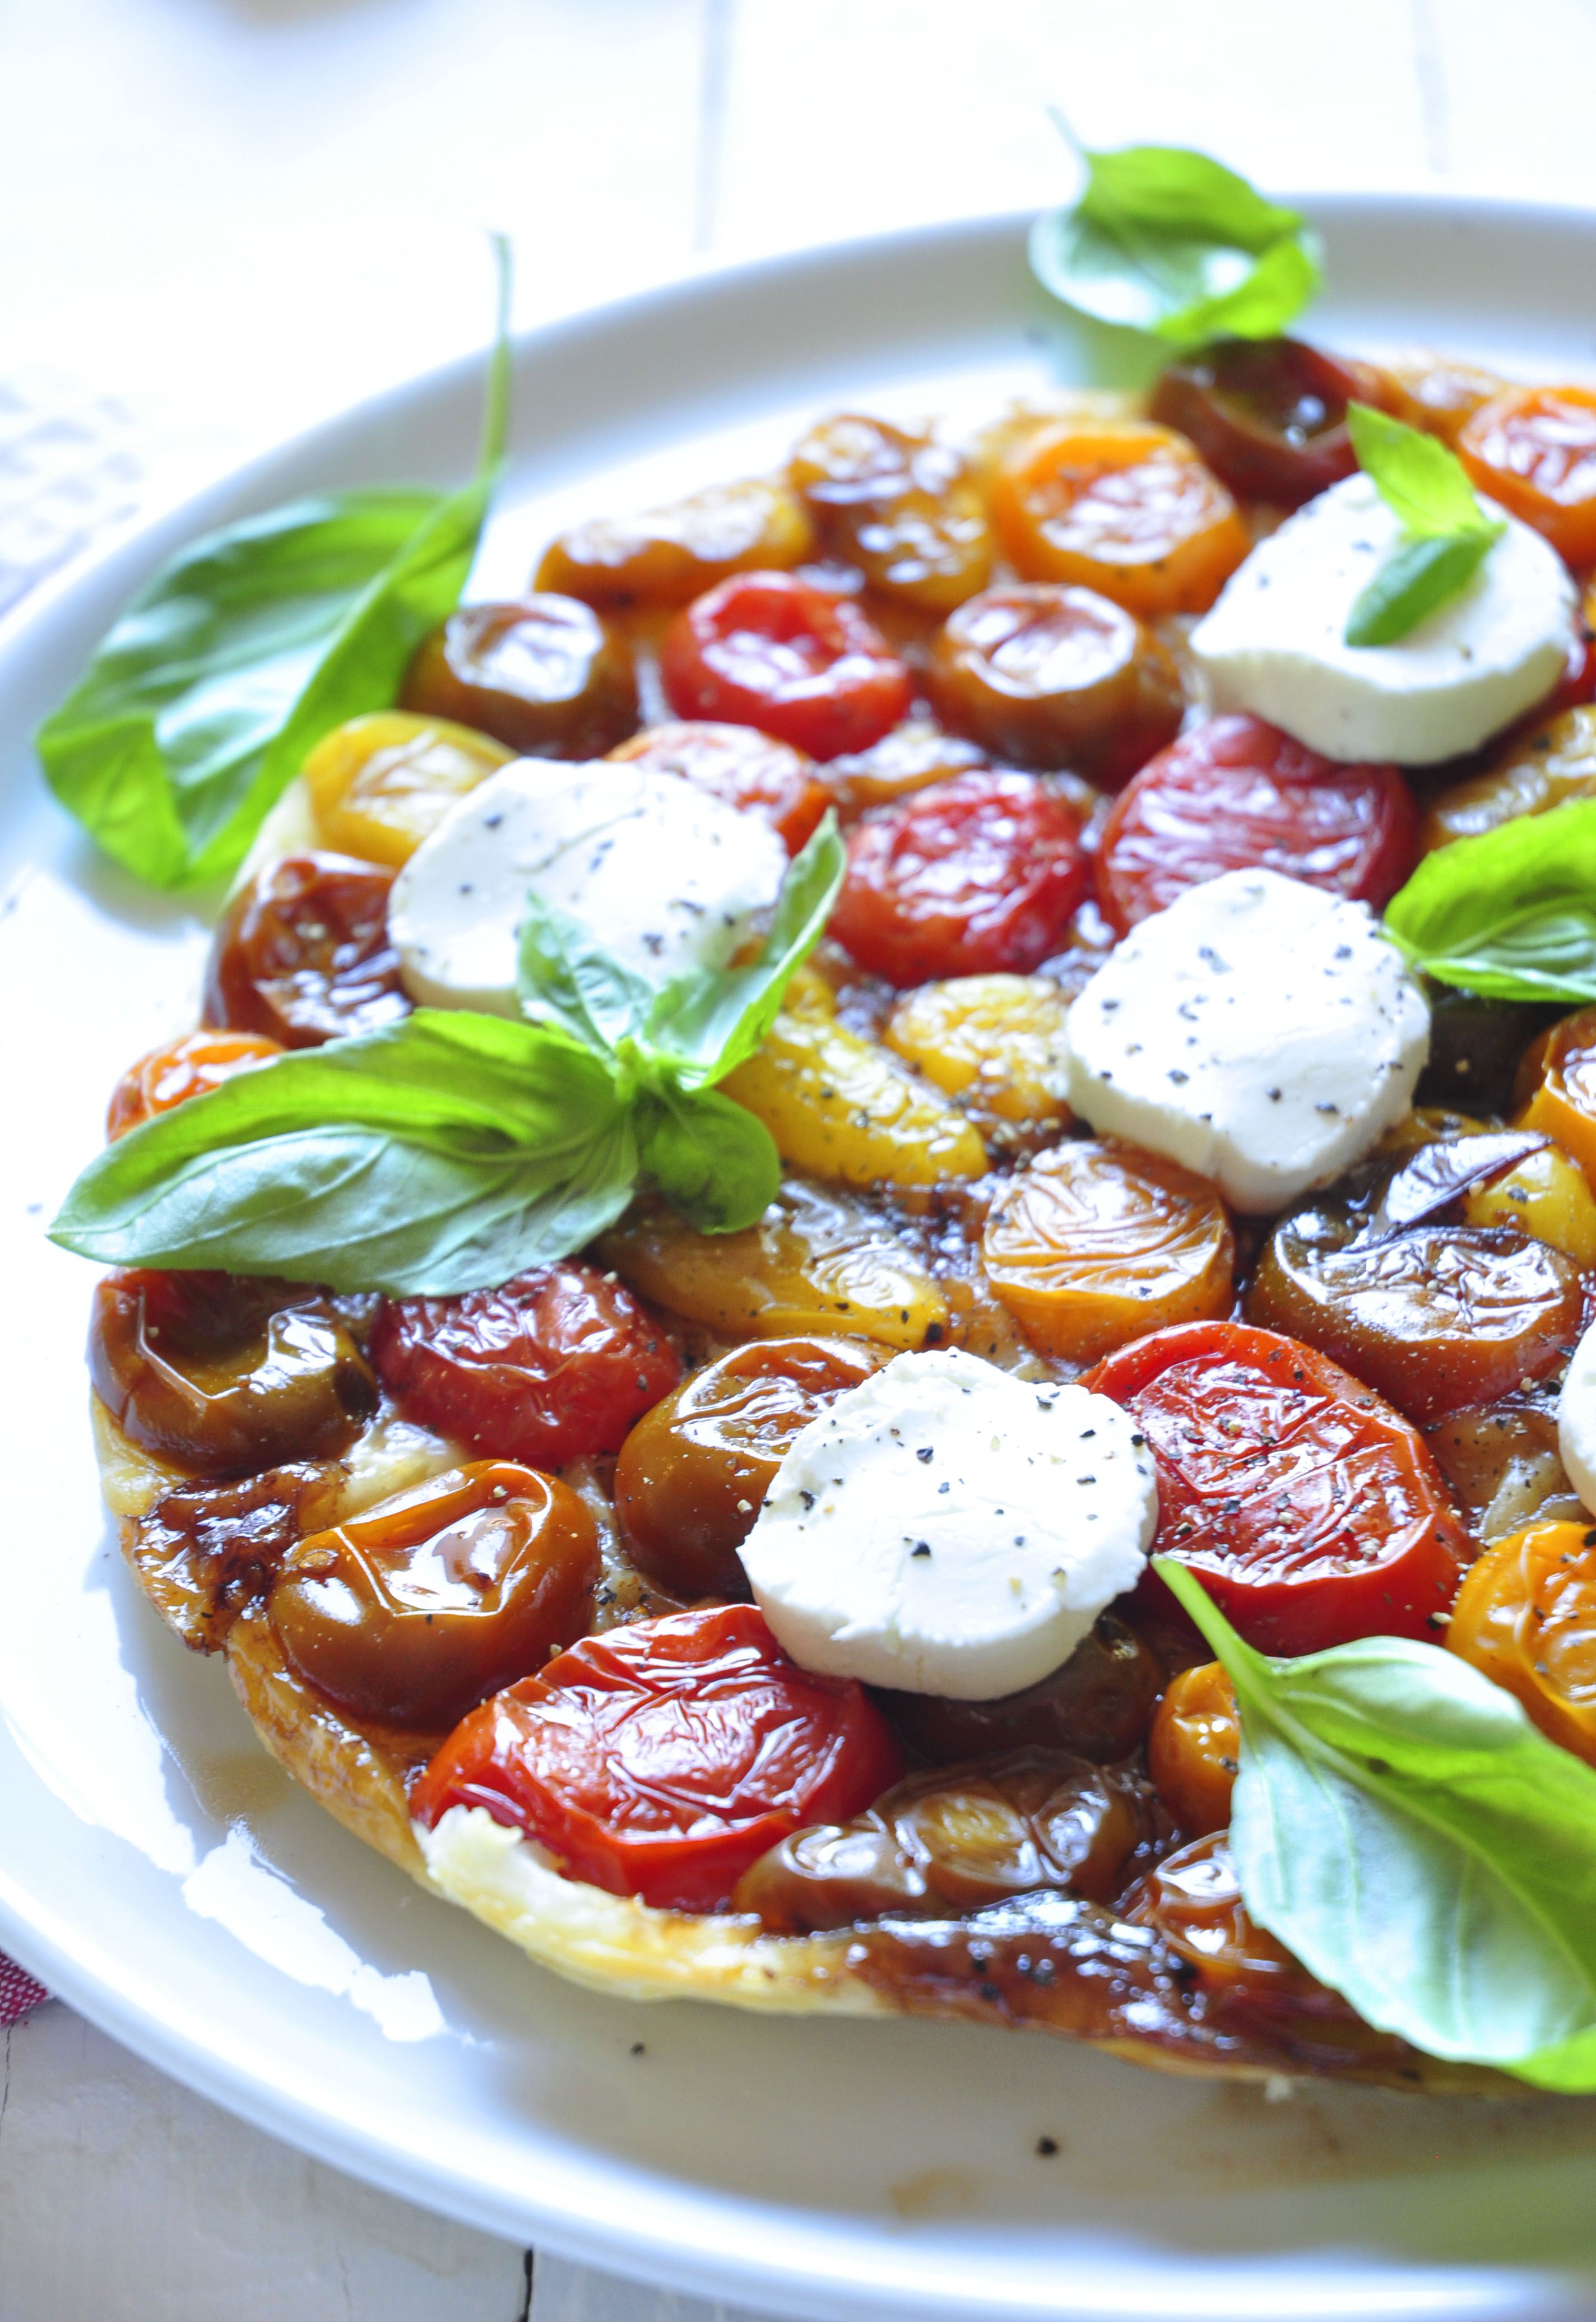 Tomato Tarte Tatin with Goats Cheese